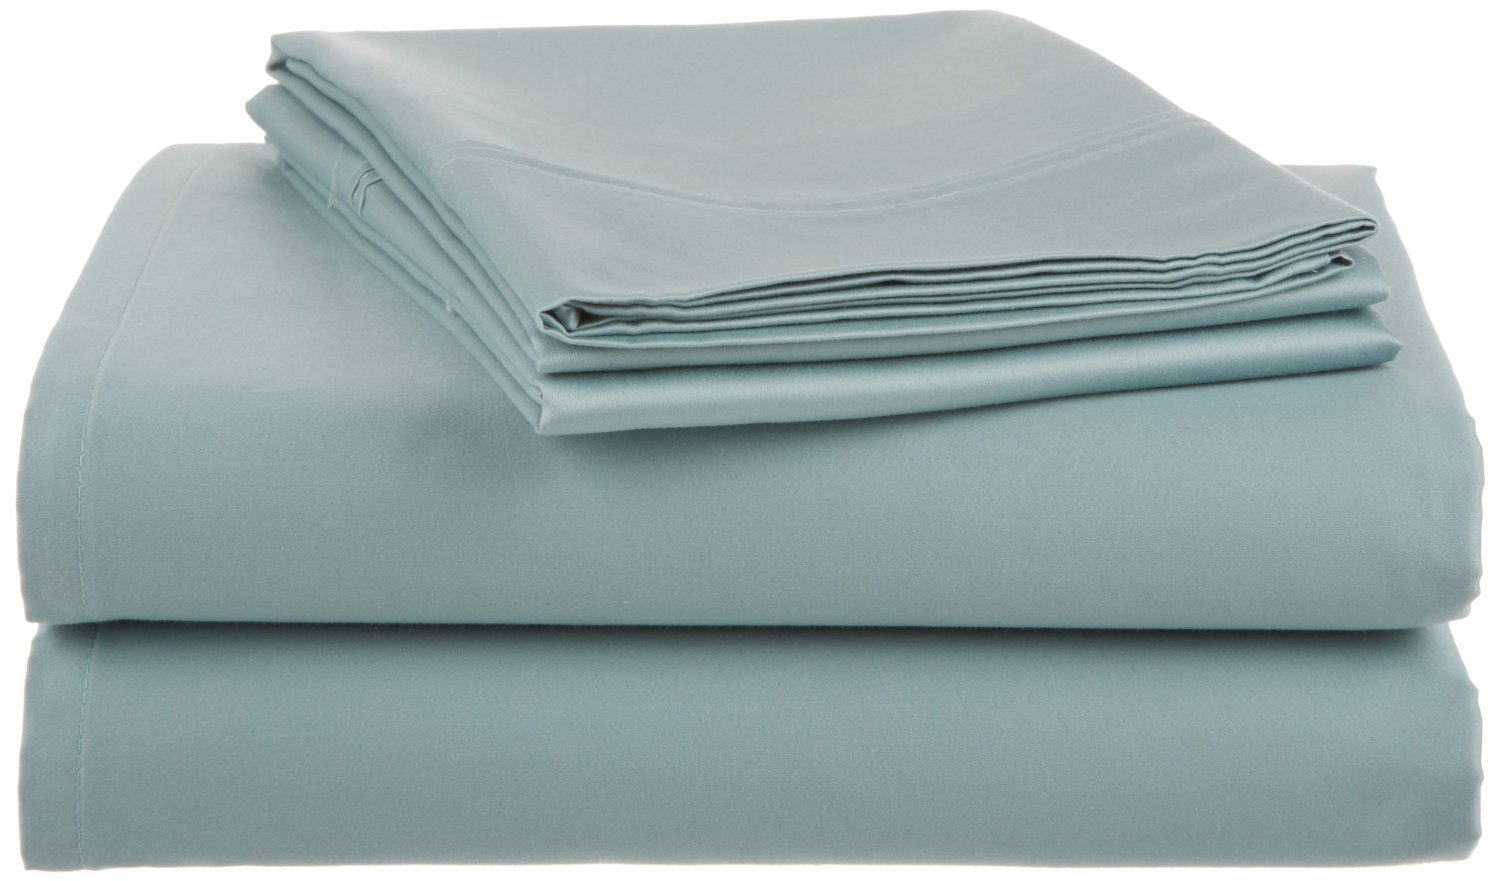 Crowning Touch 500 Thread Count Wrinkle-Resistant Cotton Sheet Set, King, Aqua Blue